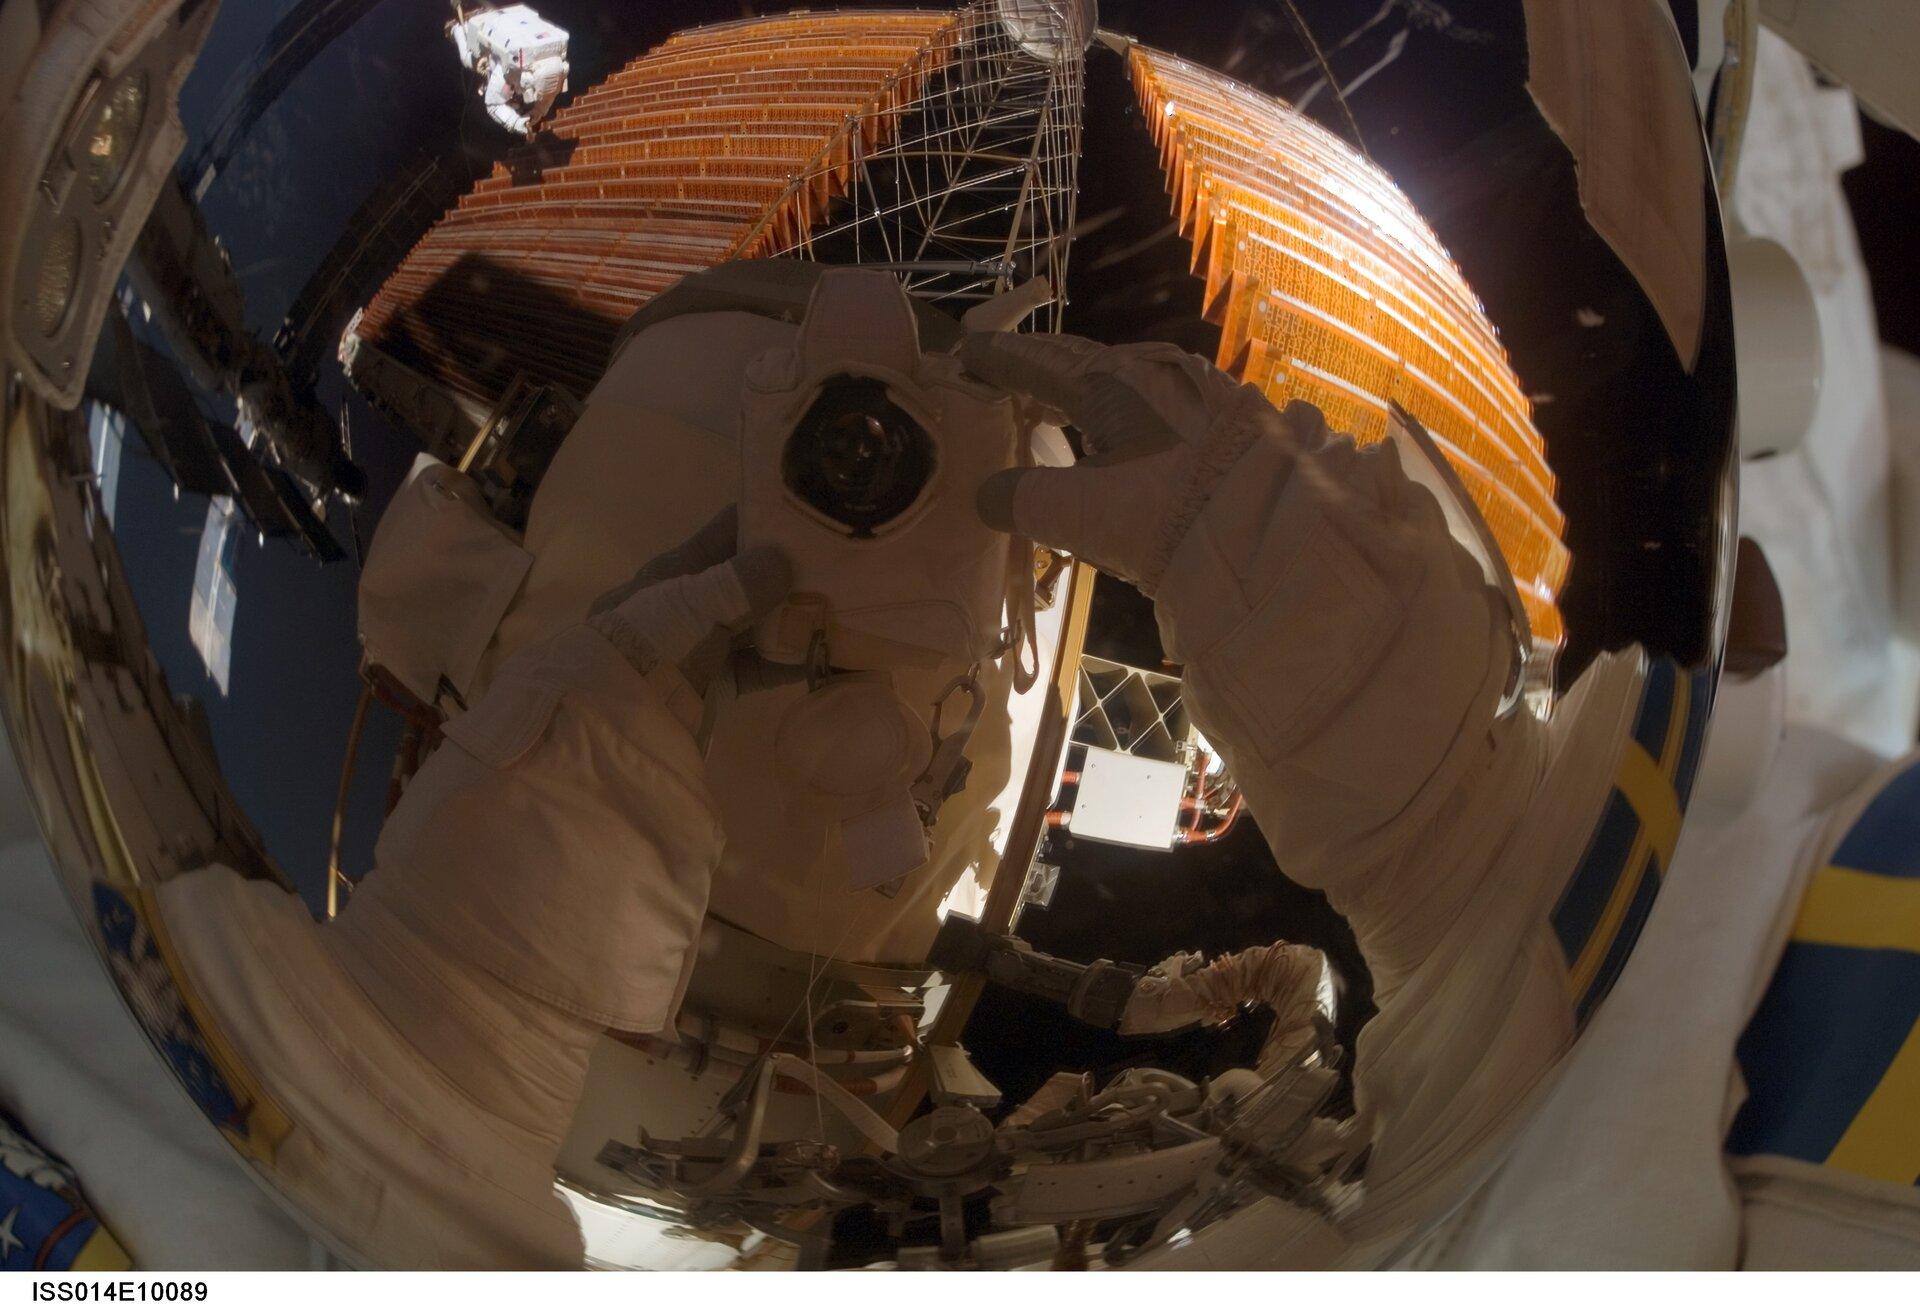 A reflection in Christer Fuglesang's helmet during the fourth STS-116 spacewalk